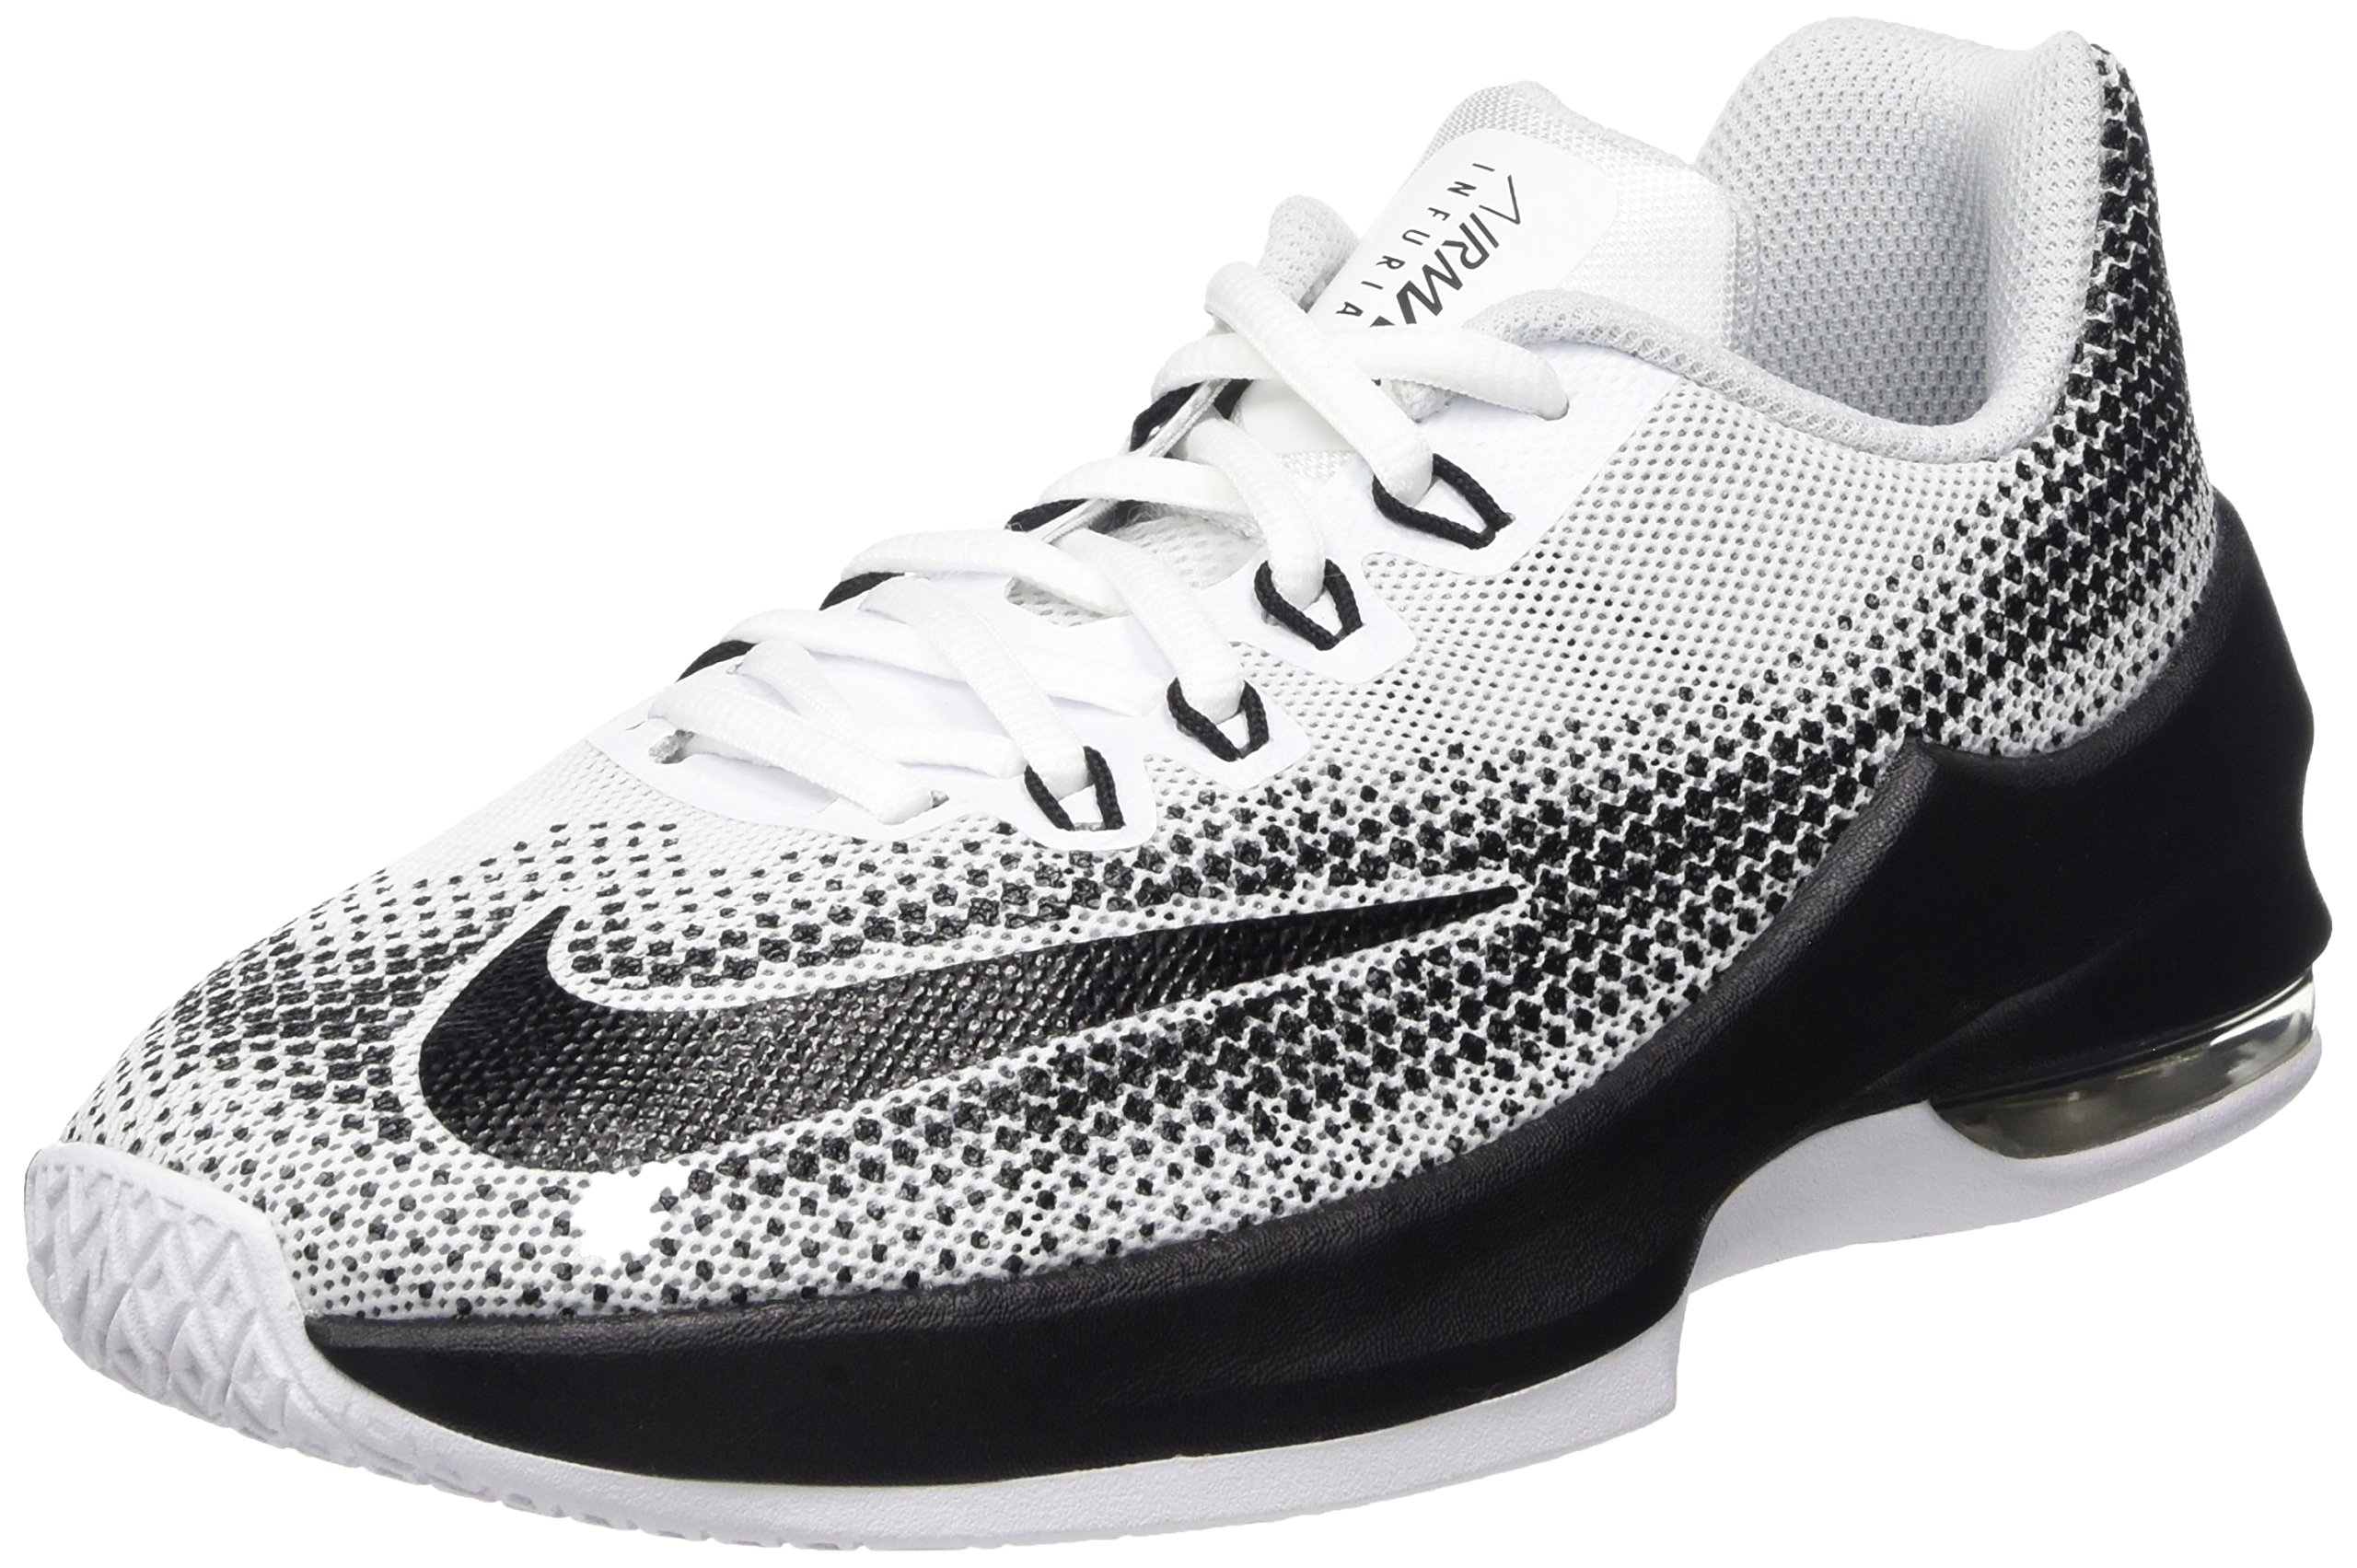 NIKE Kids Air Max Infuriate (GS) White/Black Wolf Grey Basketball Shoe 4.5 Kids US